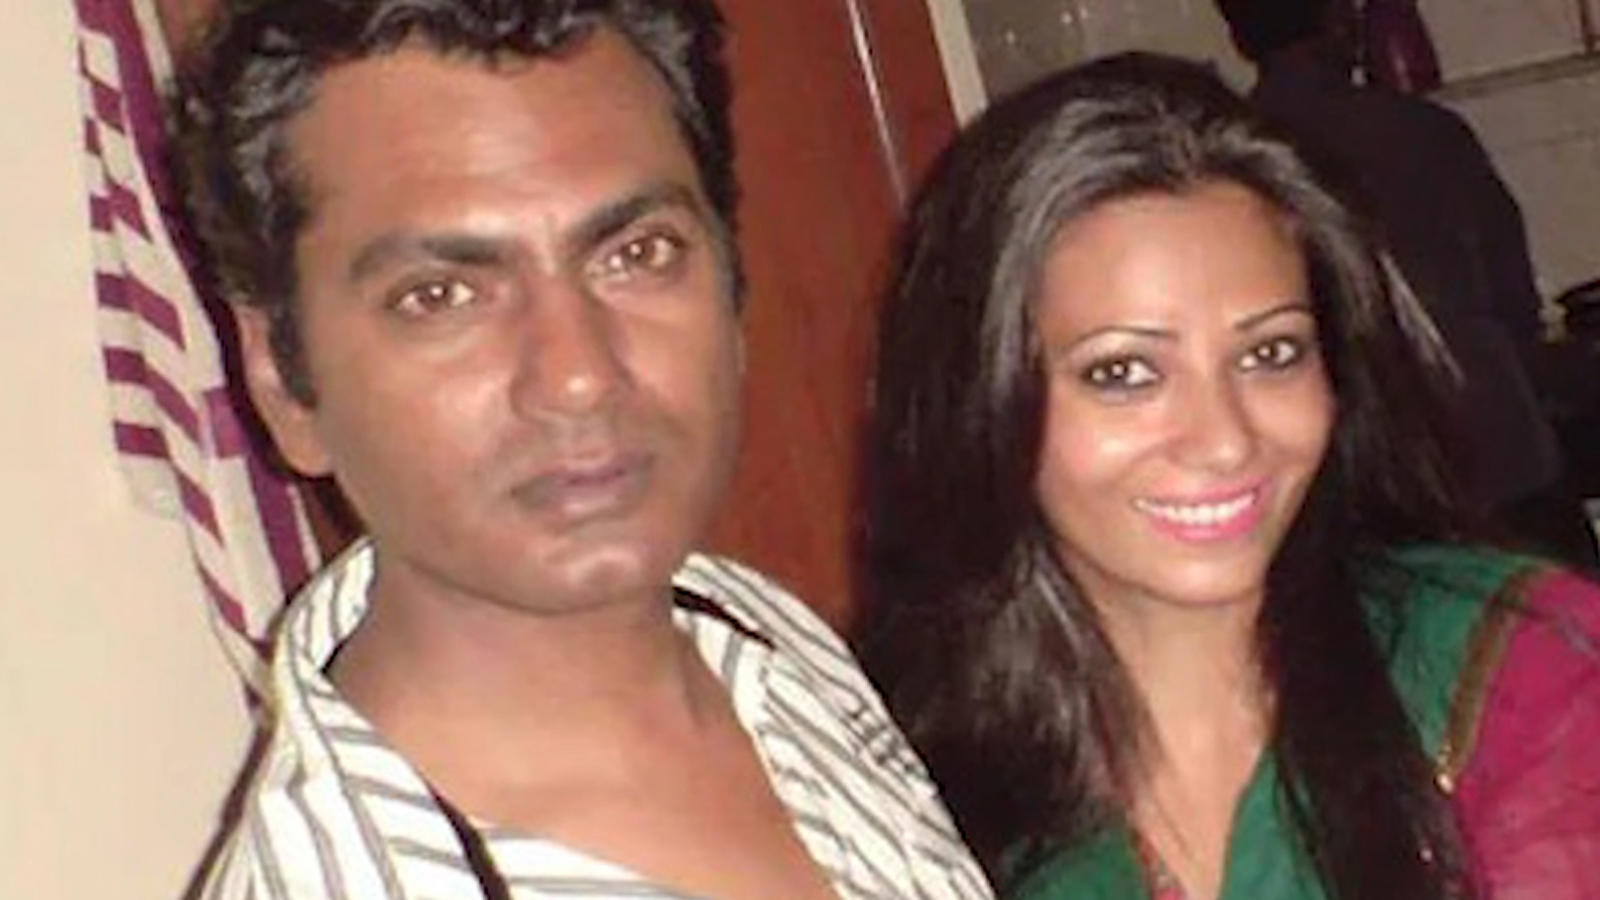 This is what Nawazuddin Siddiqui has to say about reports of reconciliation with wife Aaliya | Hindi Movie News – Bollywood – Times of India